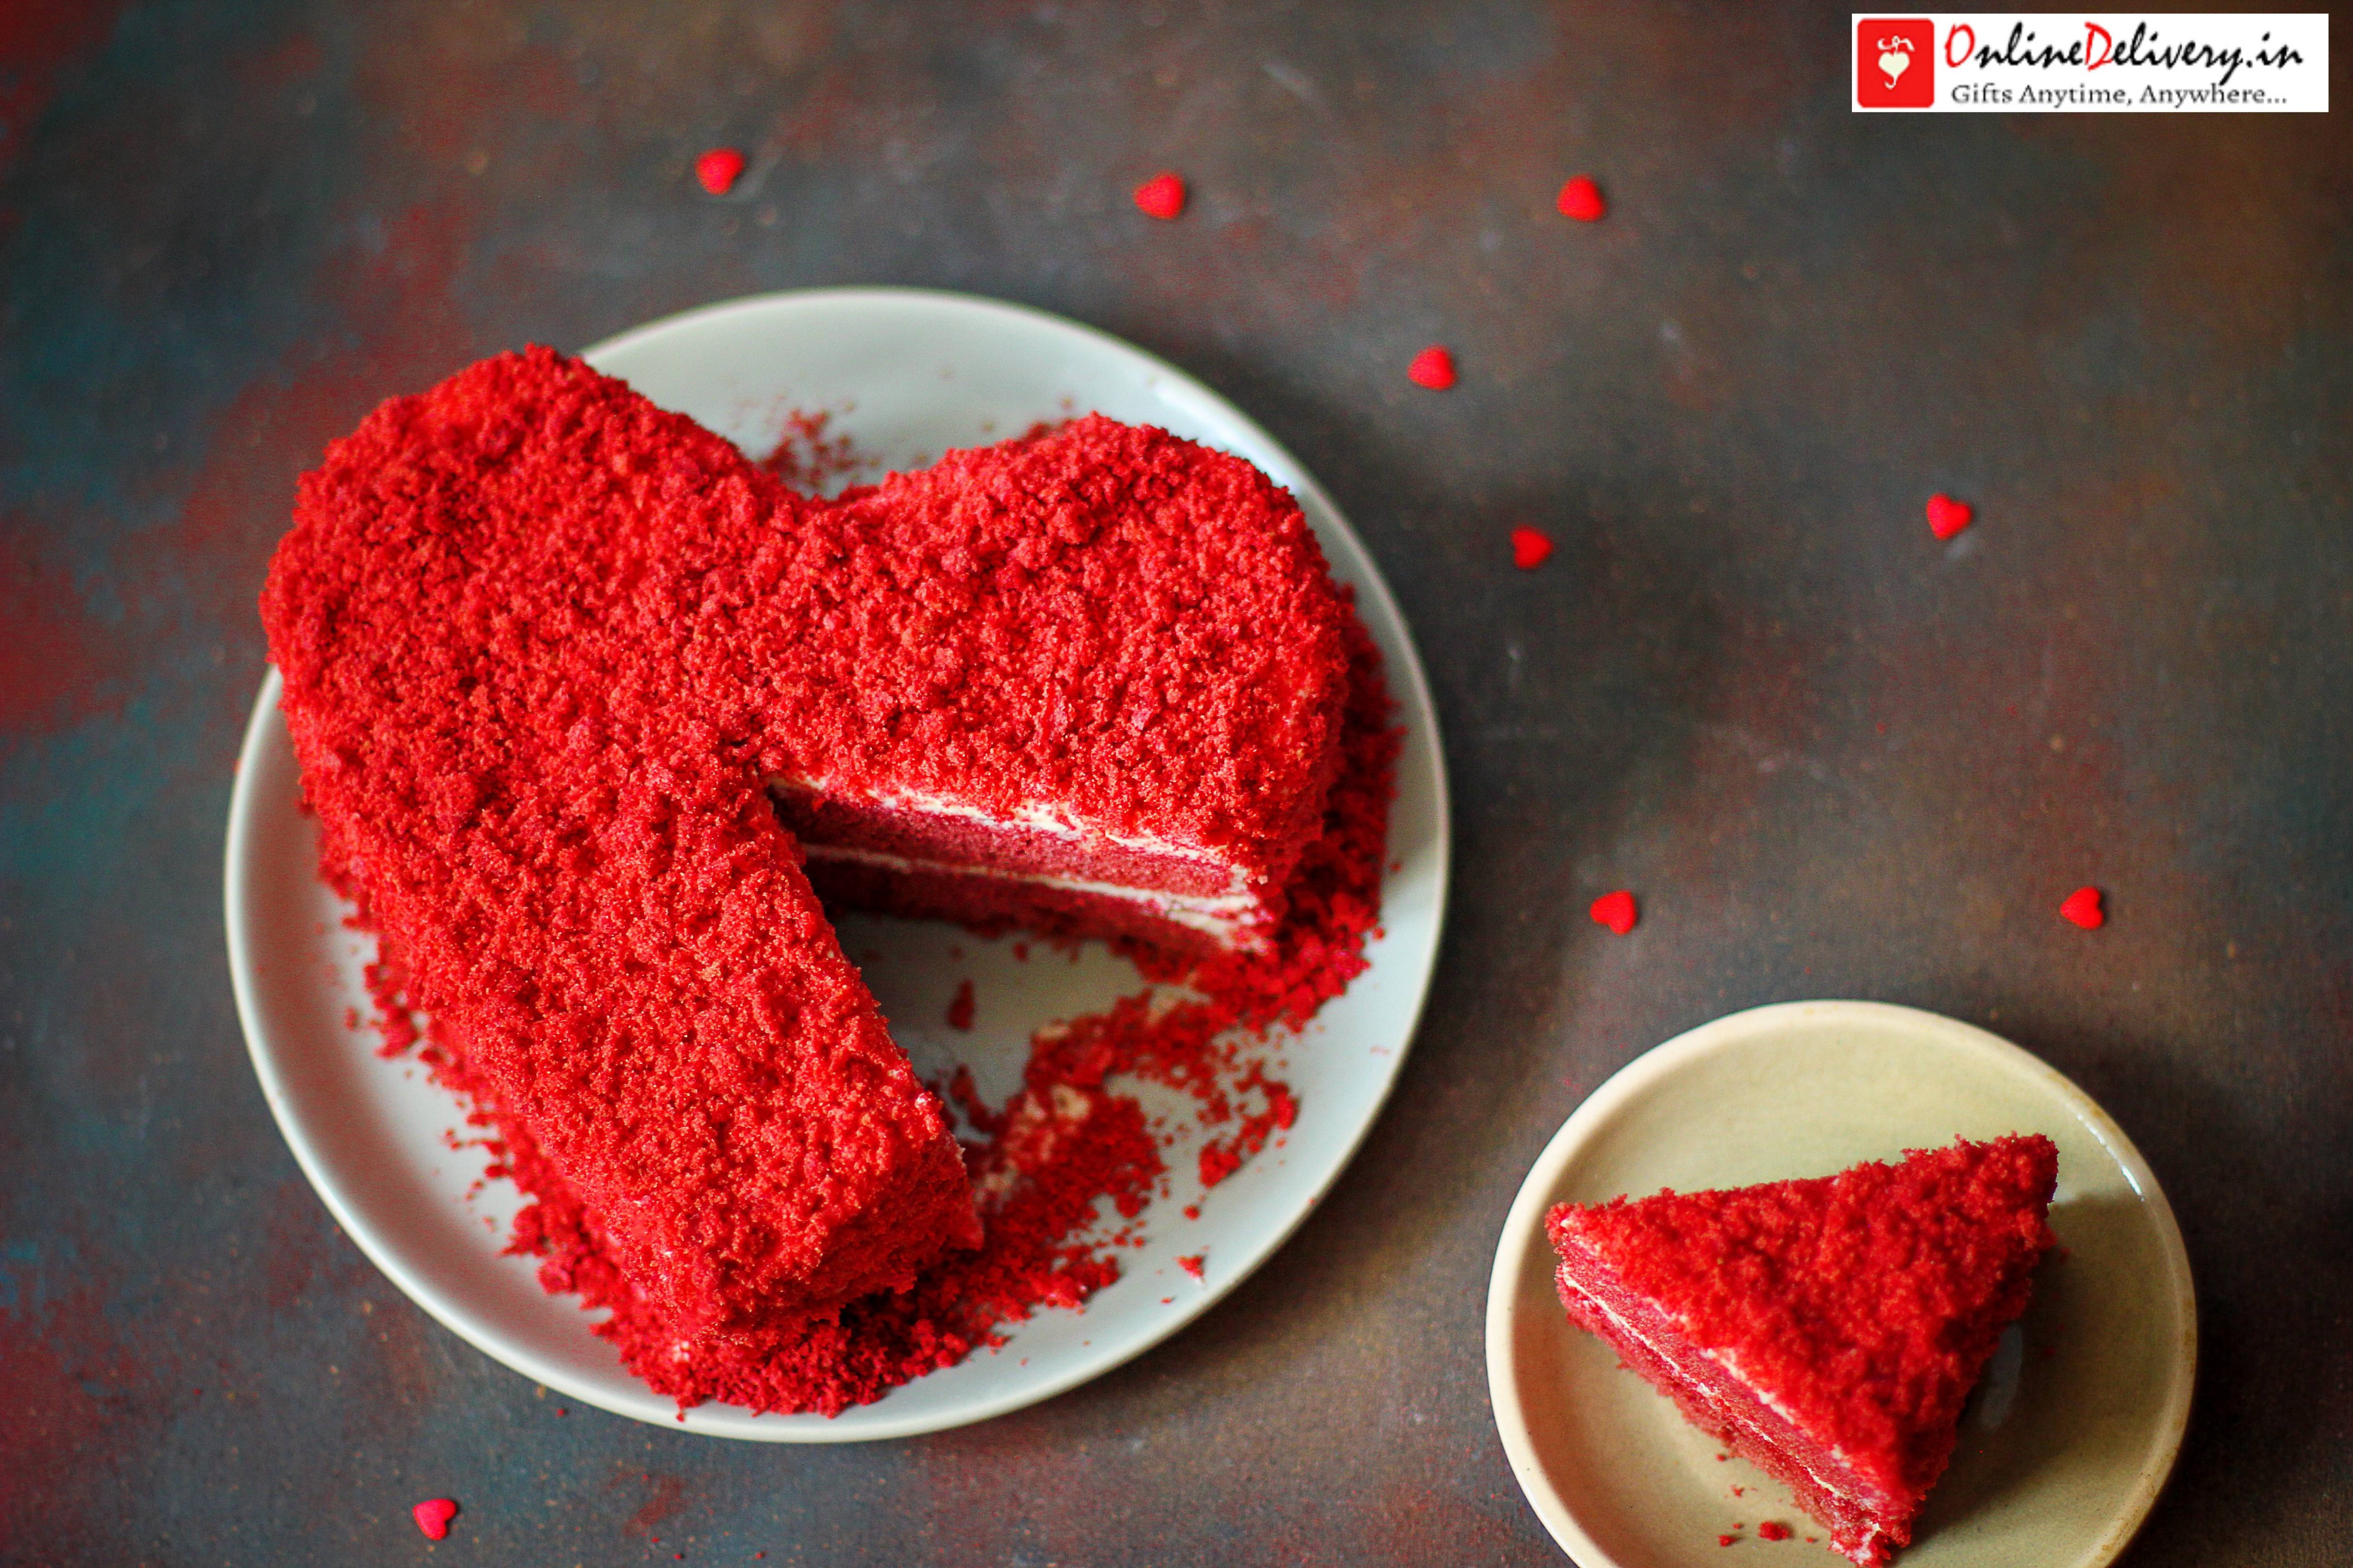 Send cakes to Pune